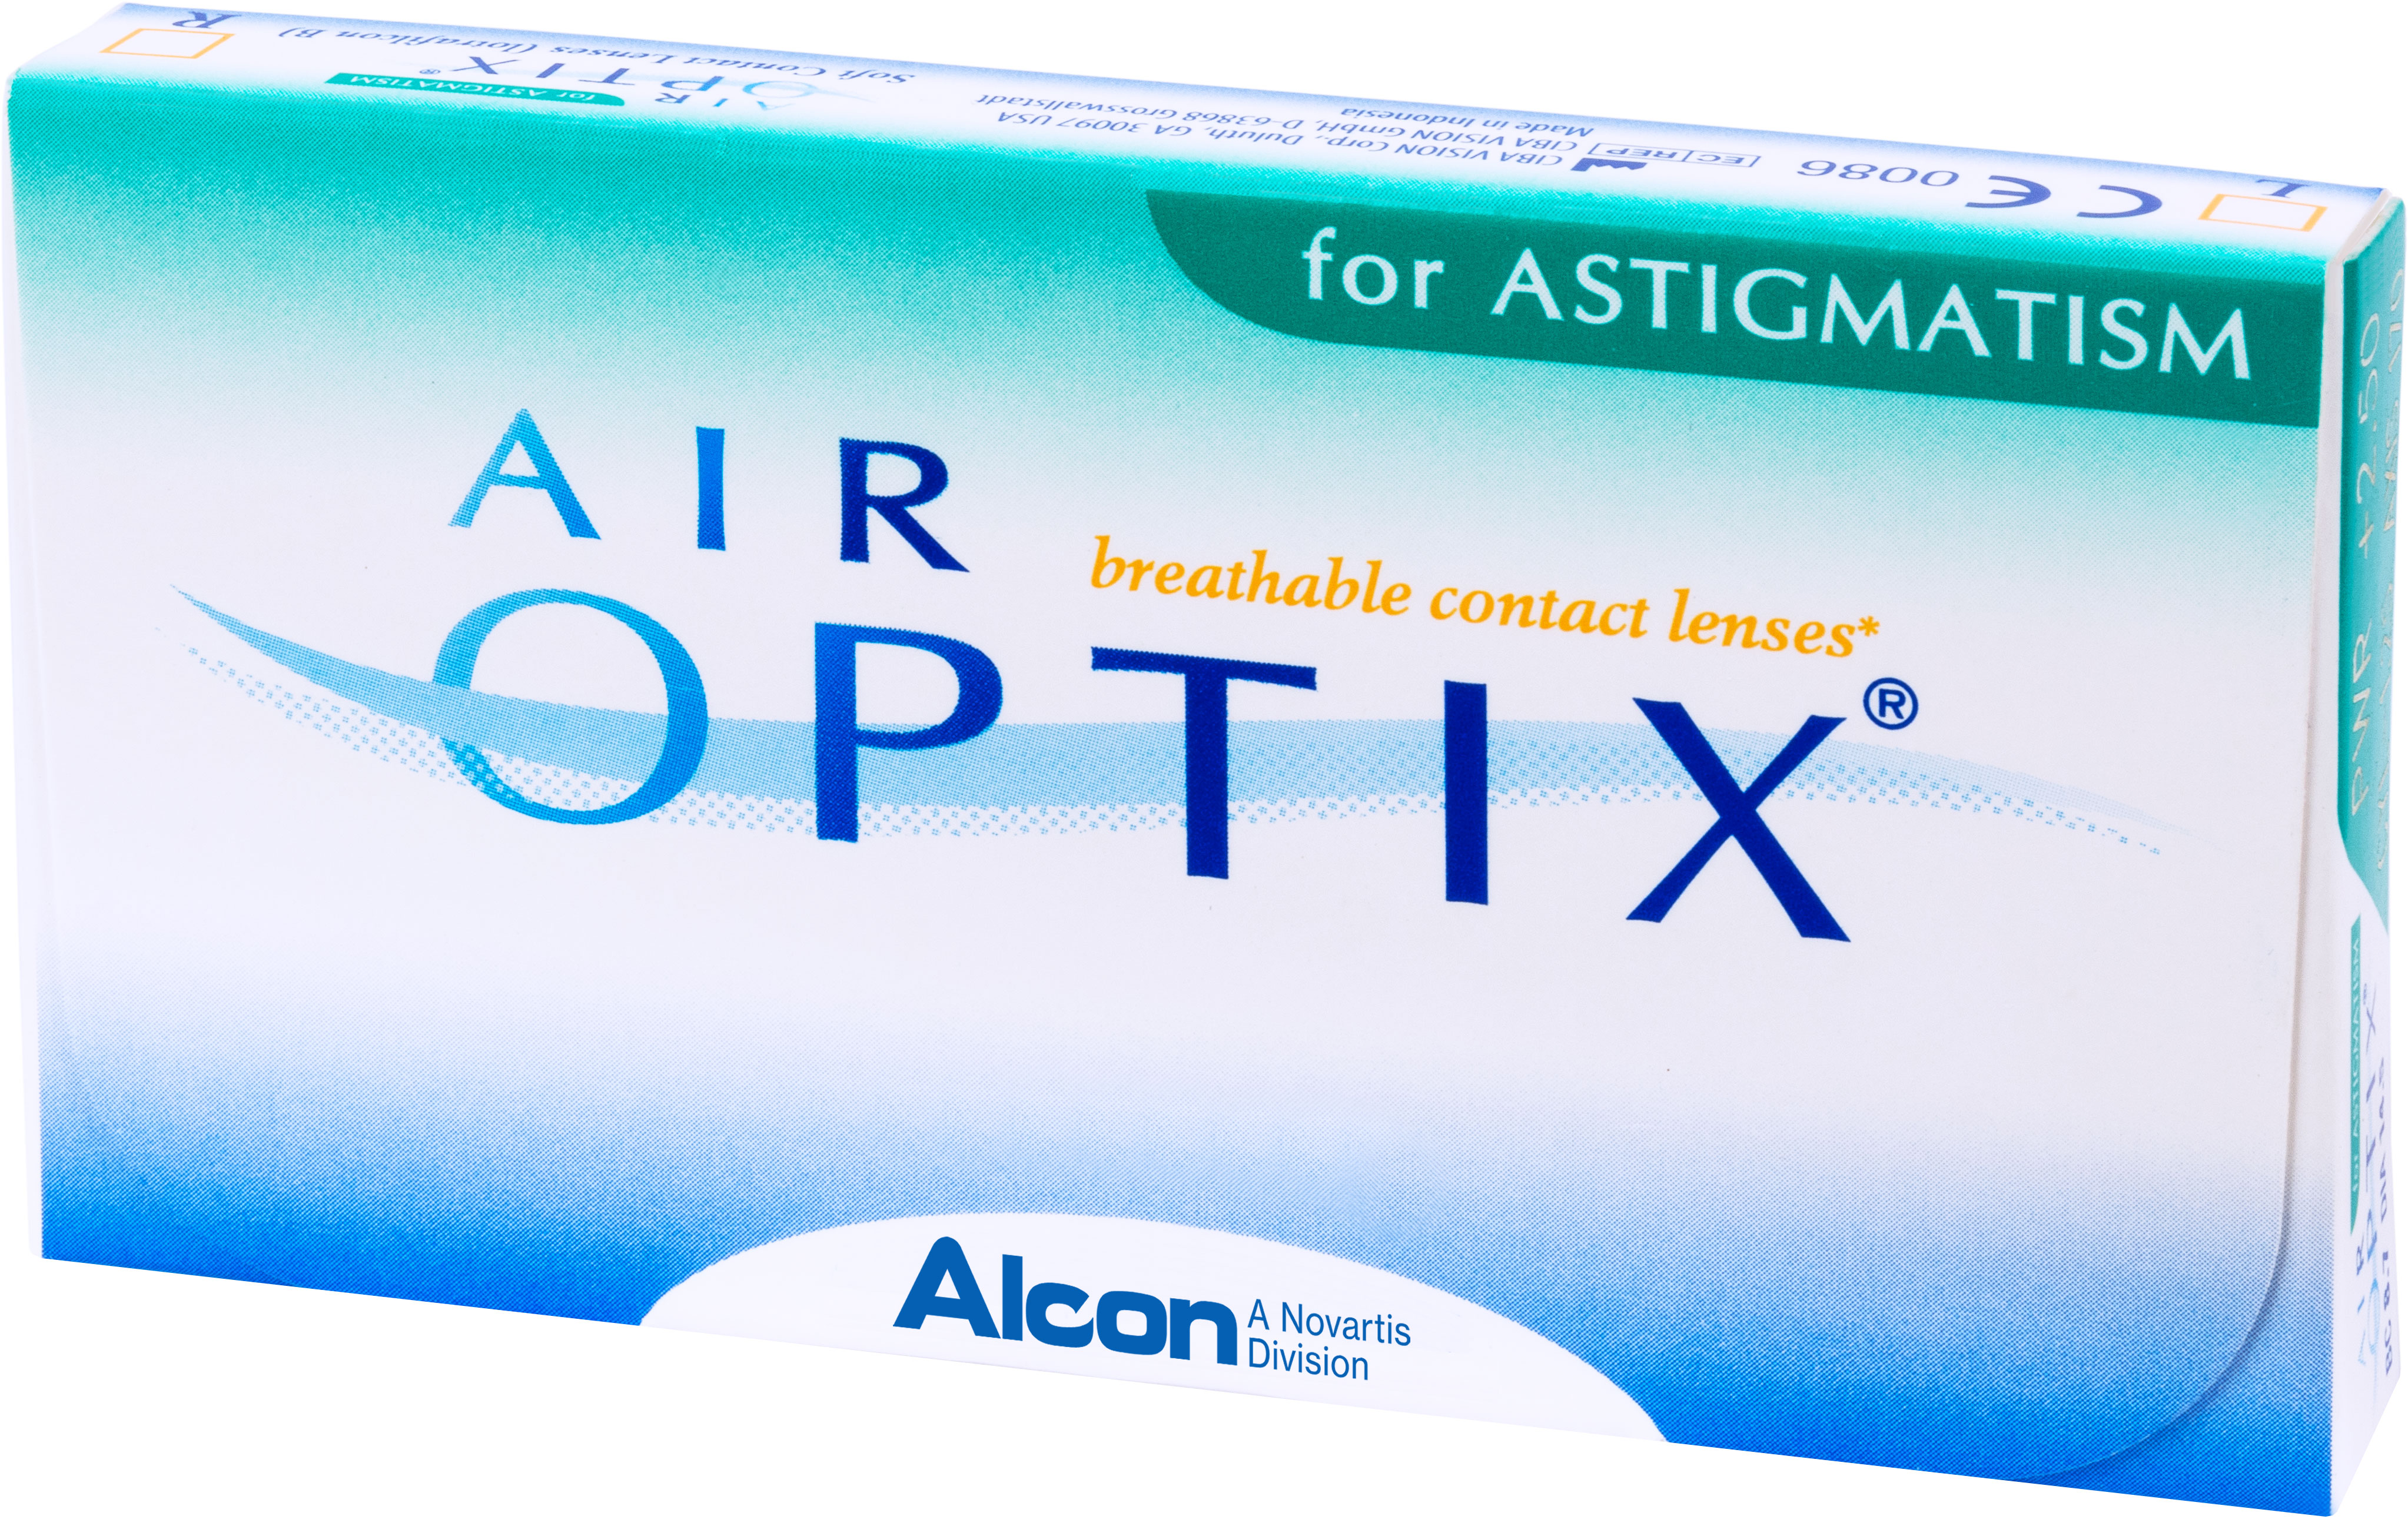 Аlcon контактные линзы Air Optix for Astigmatism 3pk /BC 8.7/DIA14.5/PWR +0.75/CYL -0.75/AXIS 160100030484with Hydraclear